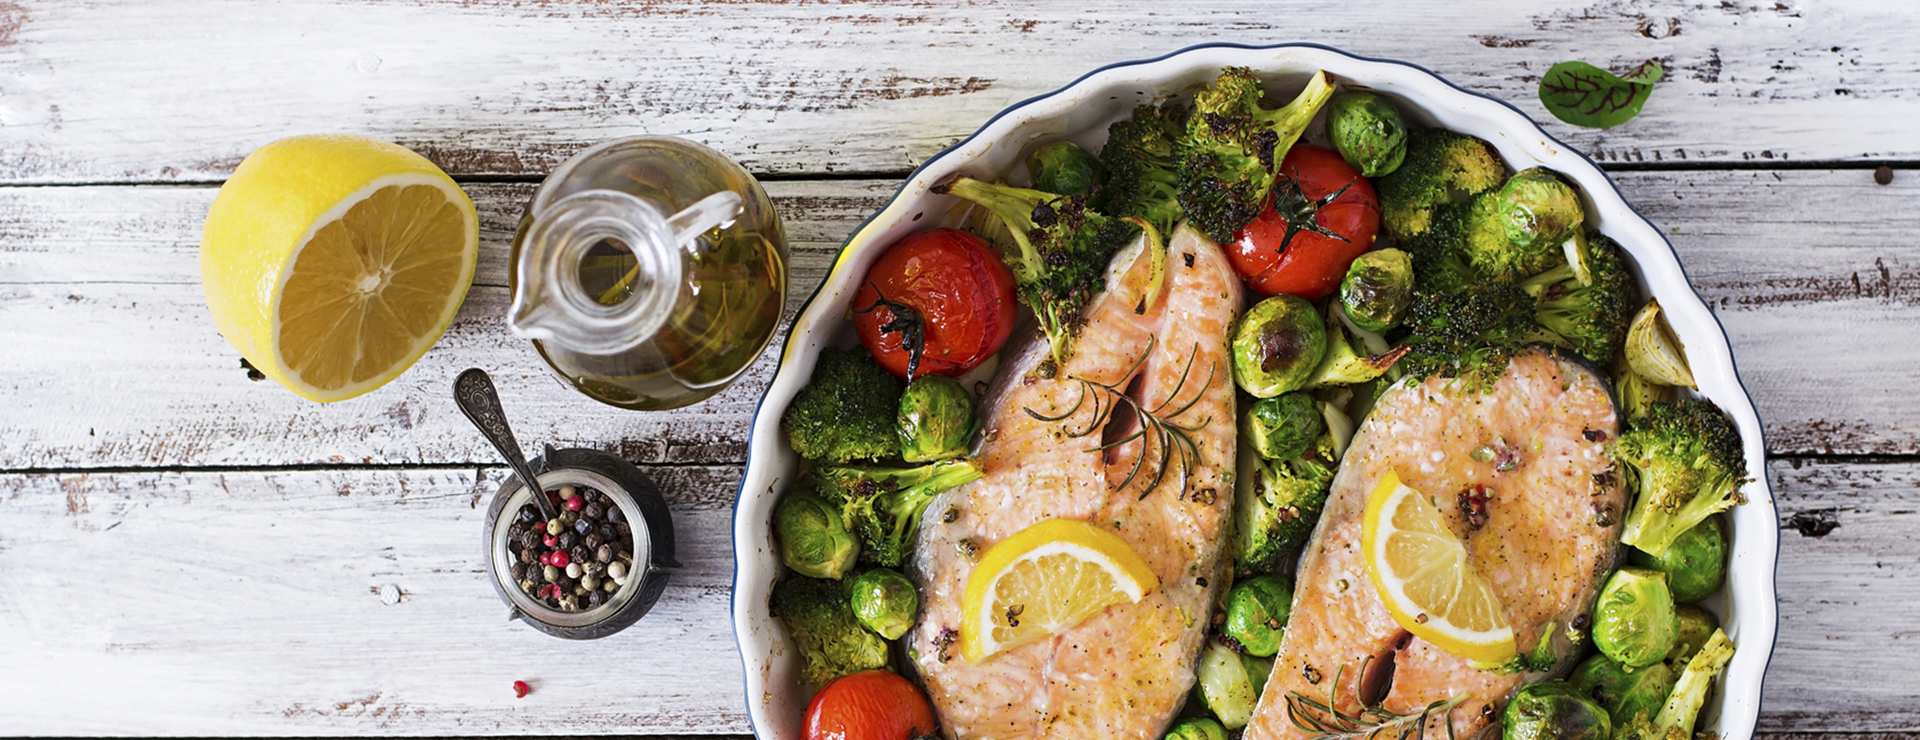 vitamin d and the heart - salmon with vegetables